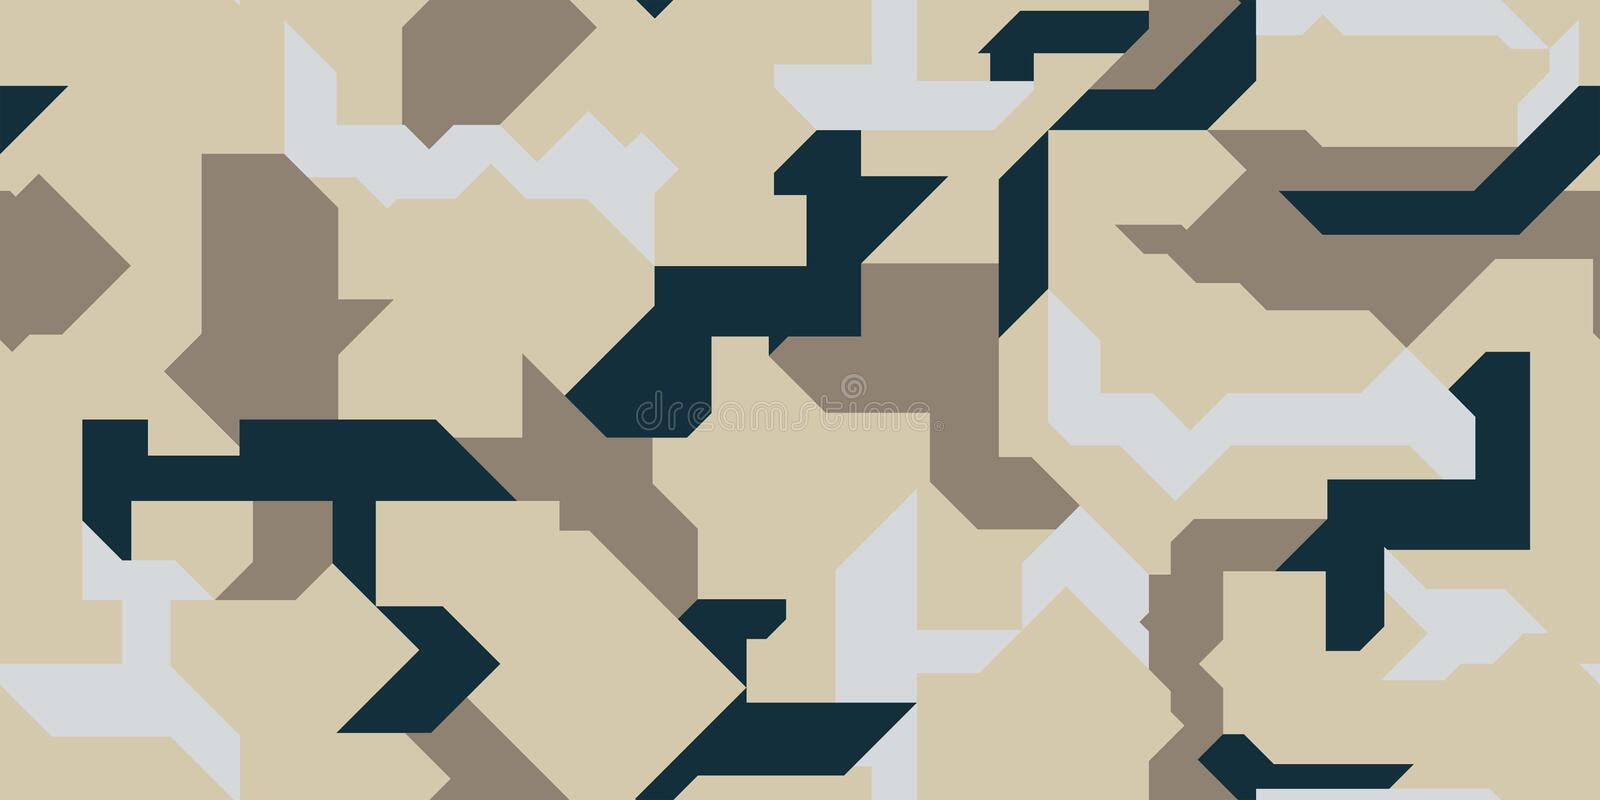 Pattern of Geometric Shapes for Army Clothing, weapon or vechicles. stock images